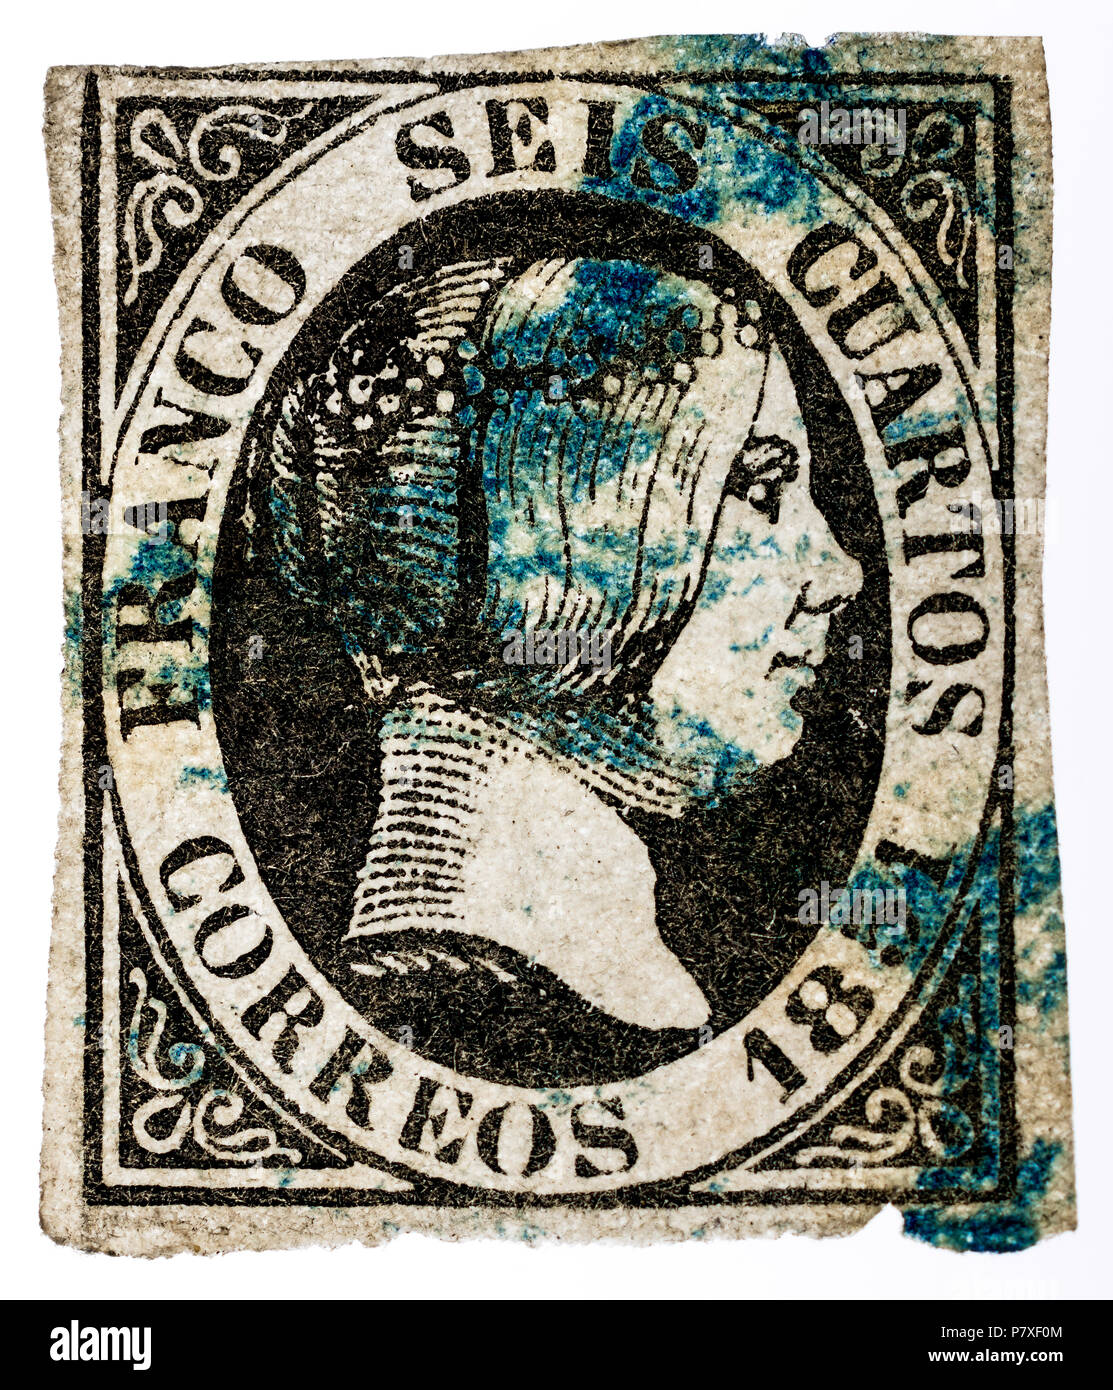 1851 Spanish Queen Isabella II postage stamp with rare blue postmark cancel.. - Stock Image